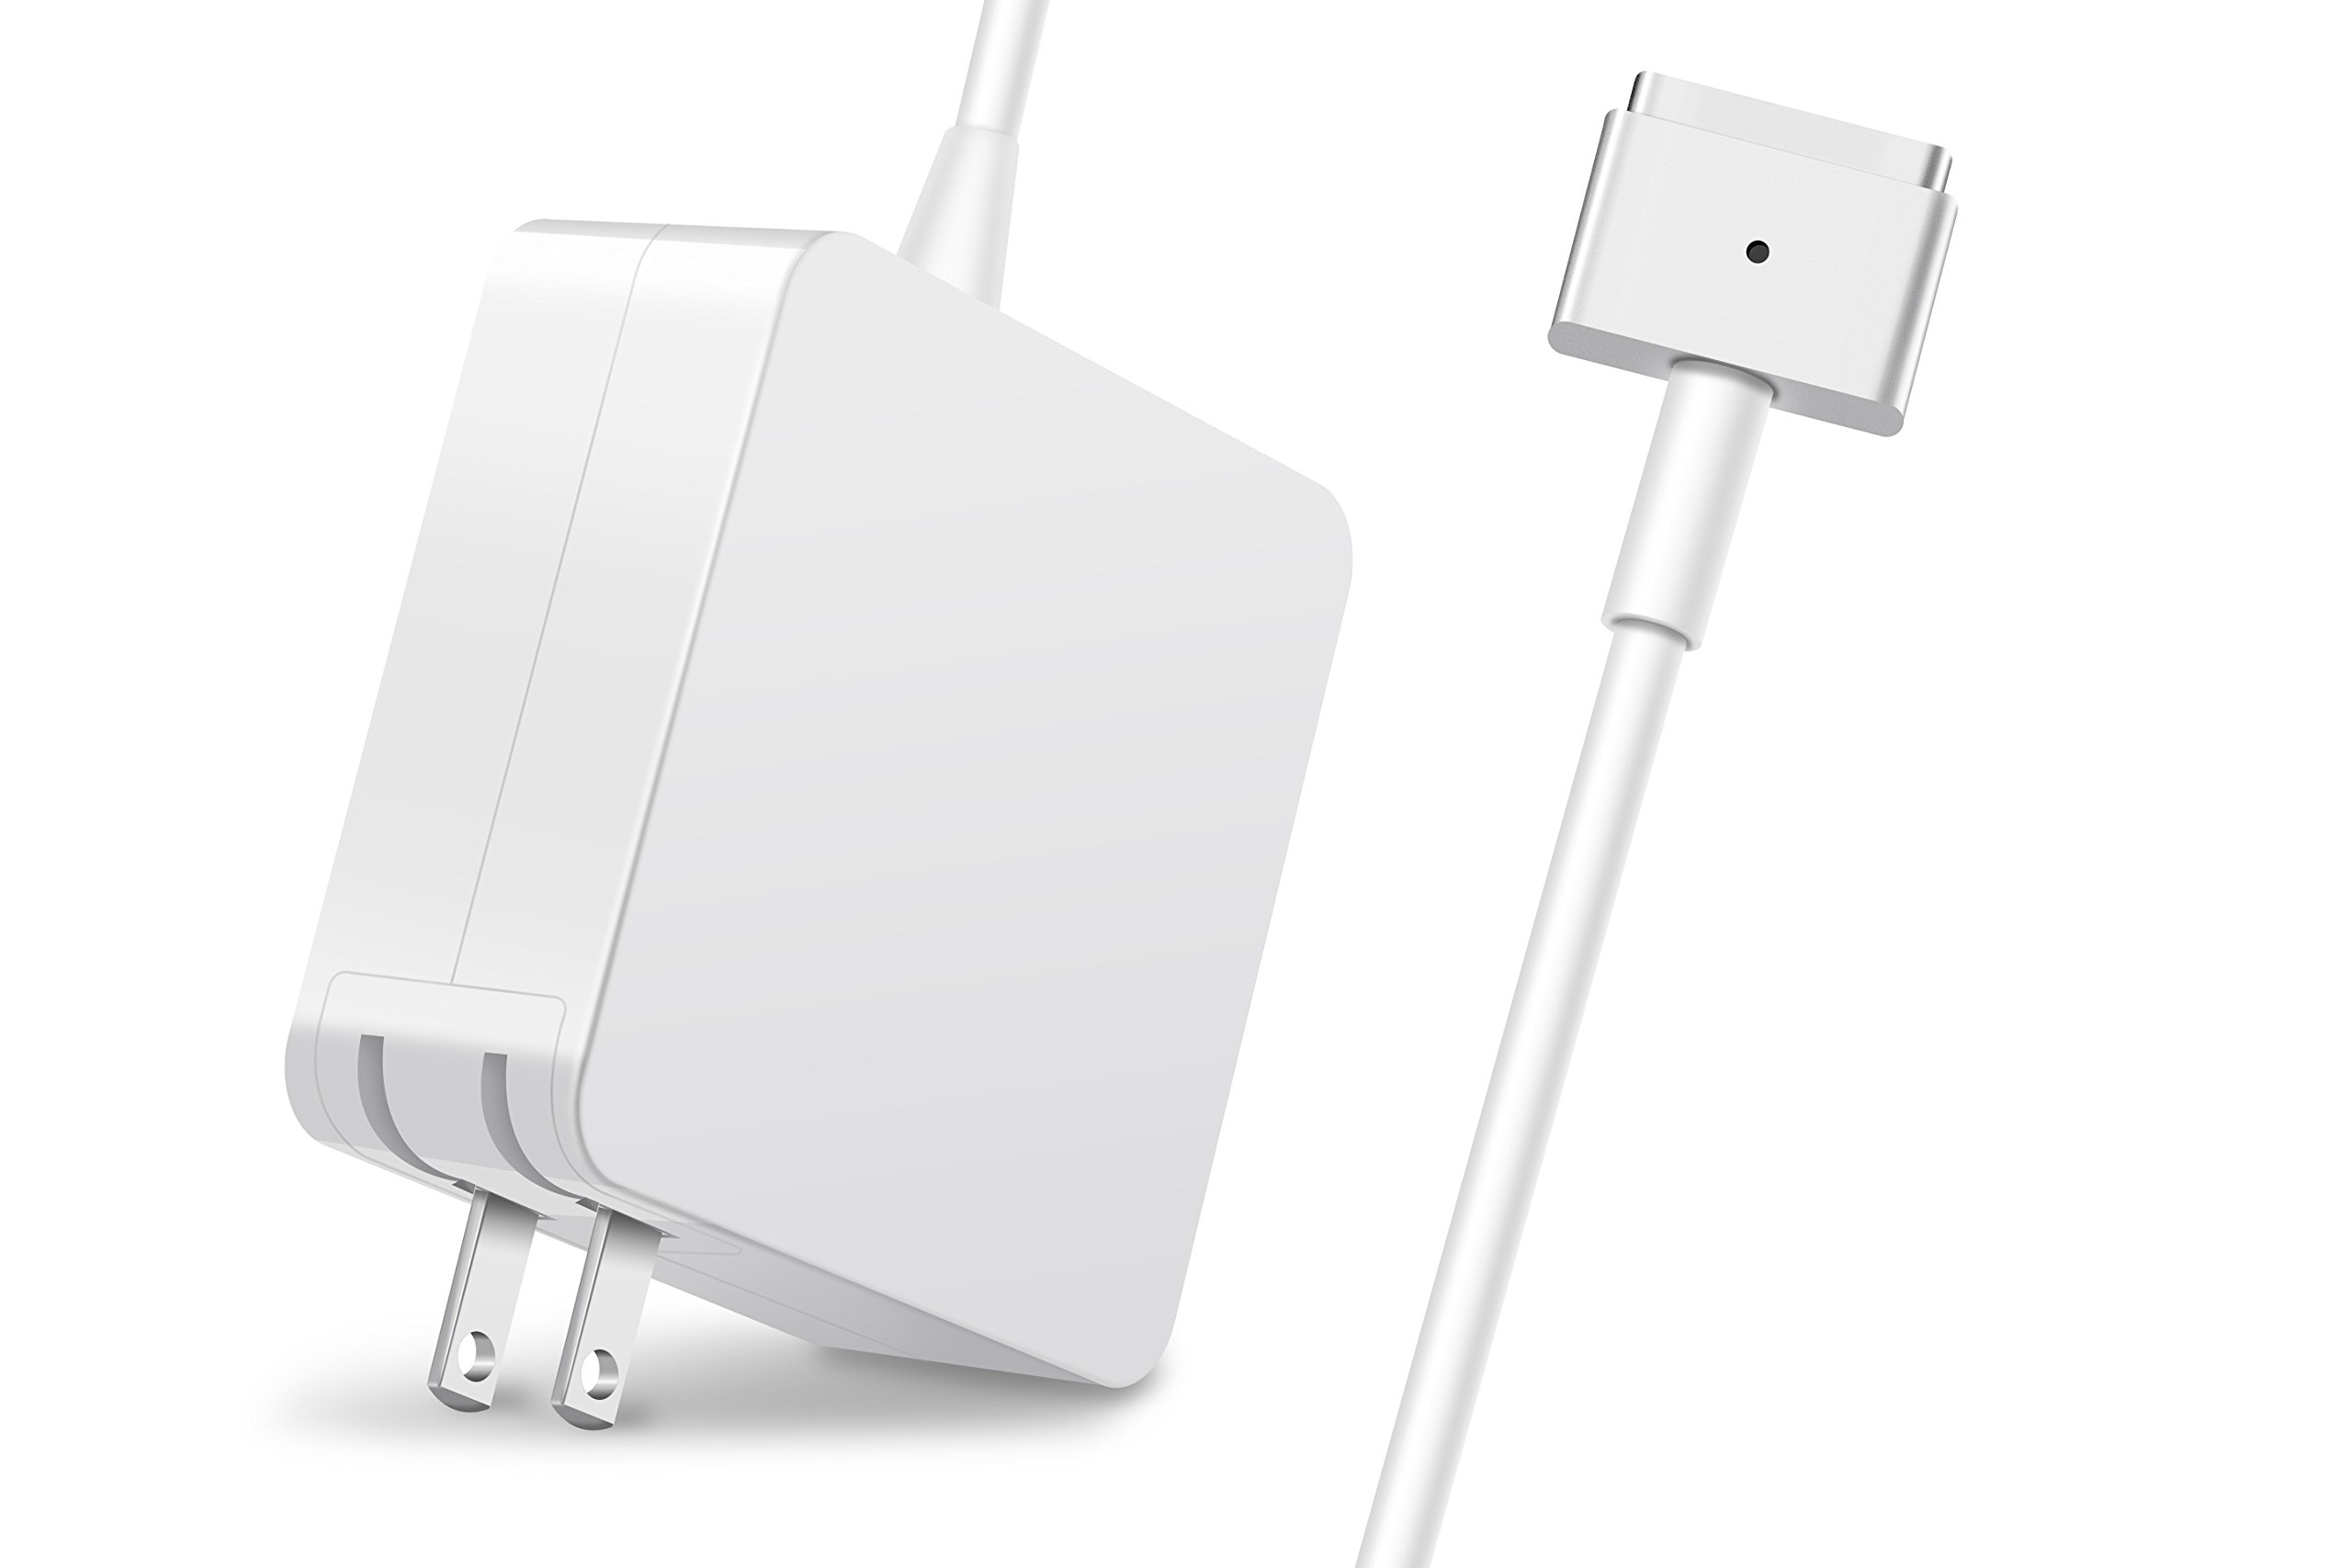 GSNOW MacBook Pro Charger – 60W Magsafe 2 T-Tip Adapter Charger for MacBook Pro 13-inch – After Late 2012